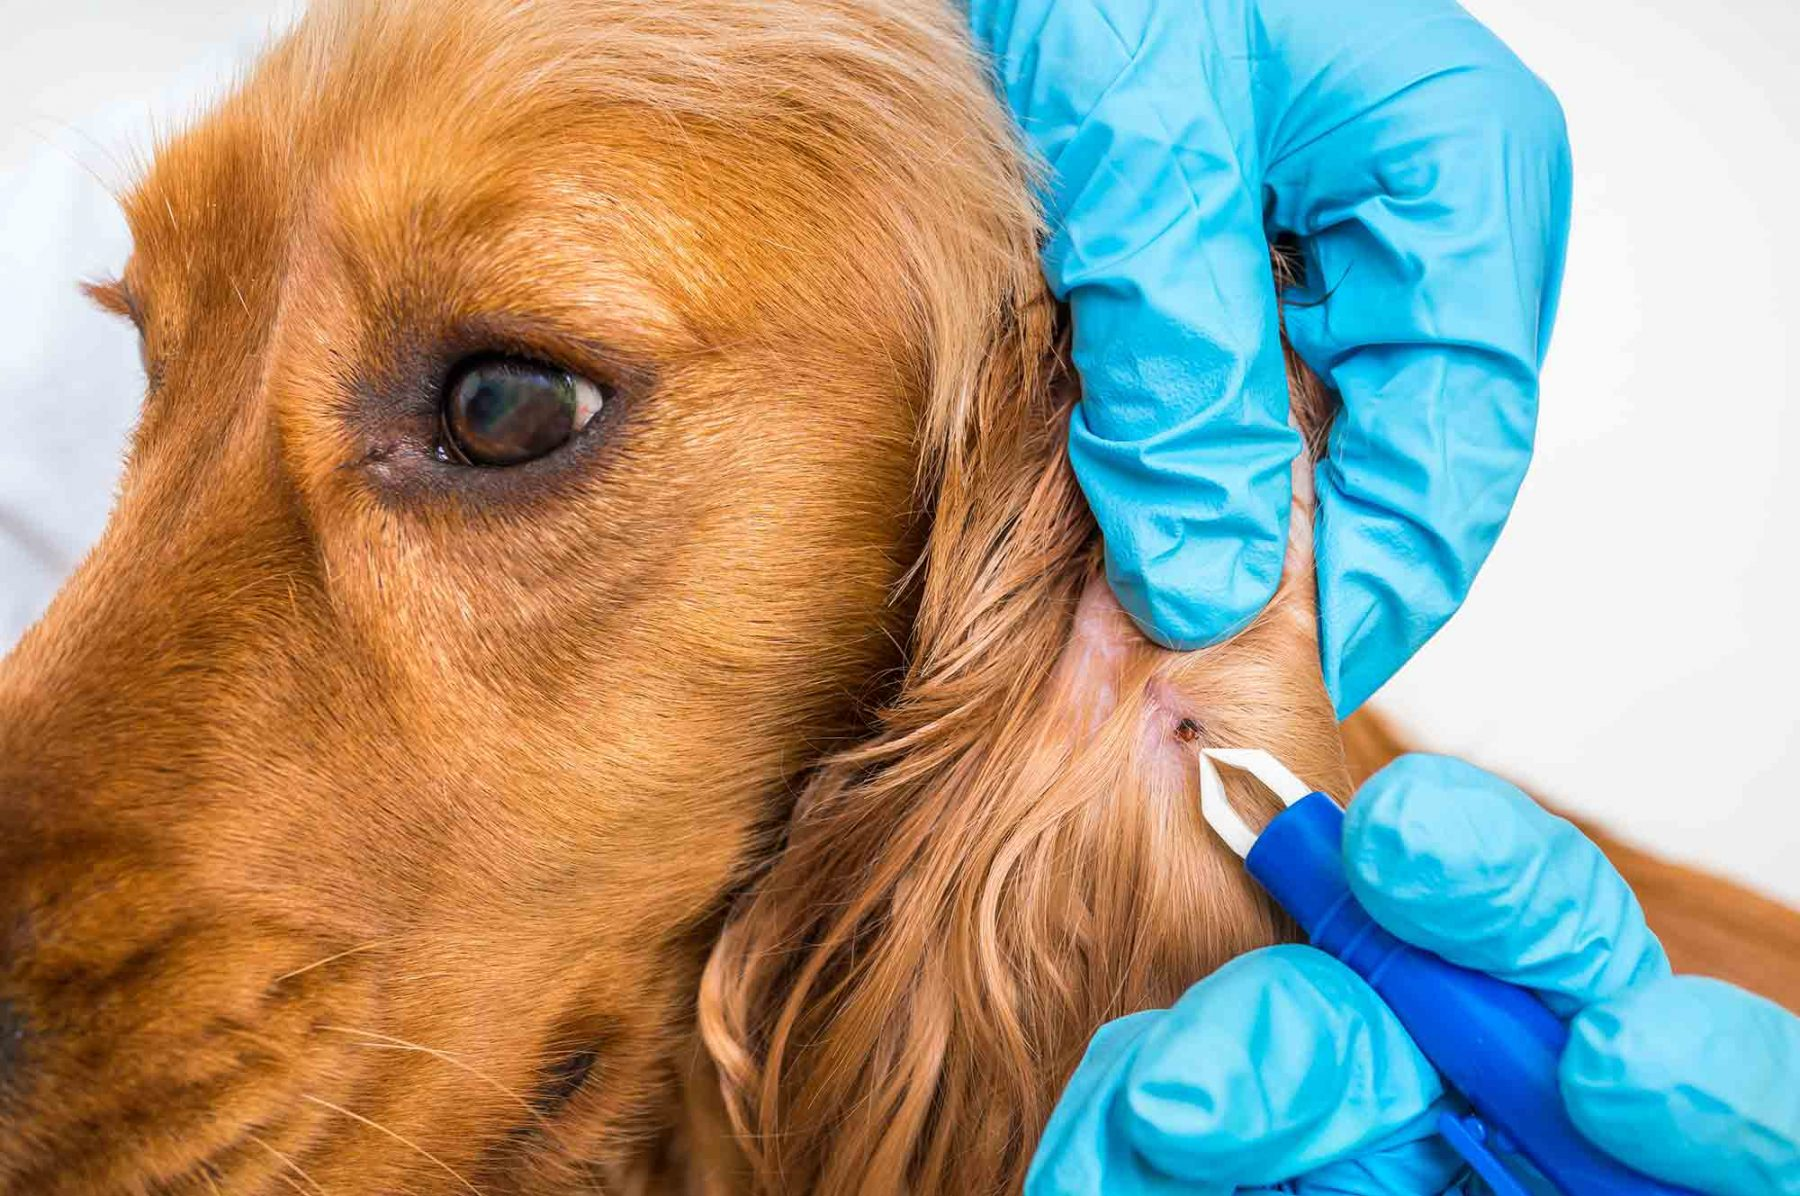 Close up of a dog's ear being examined